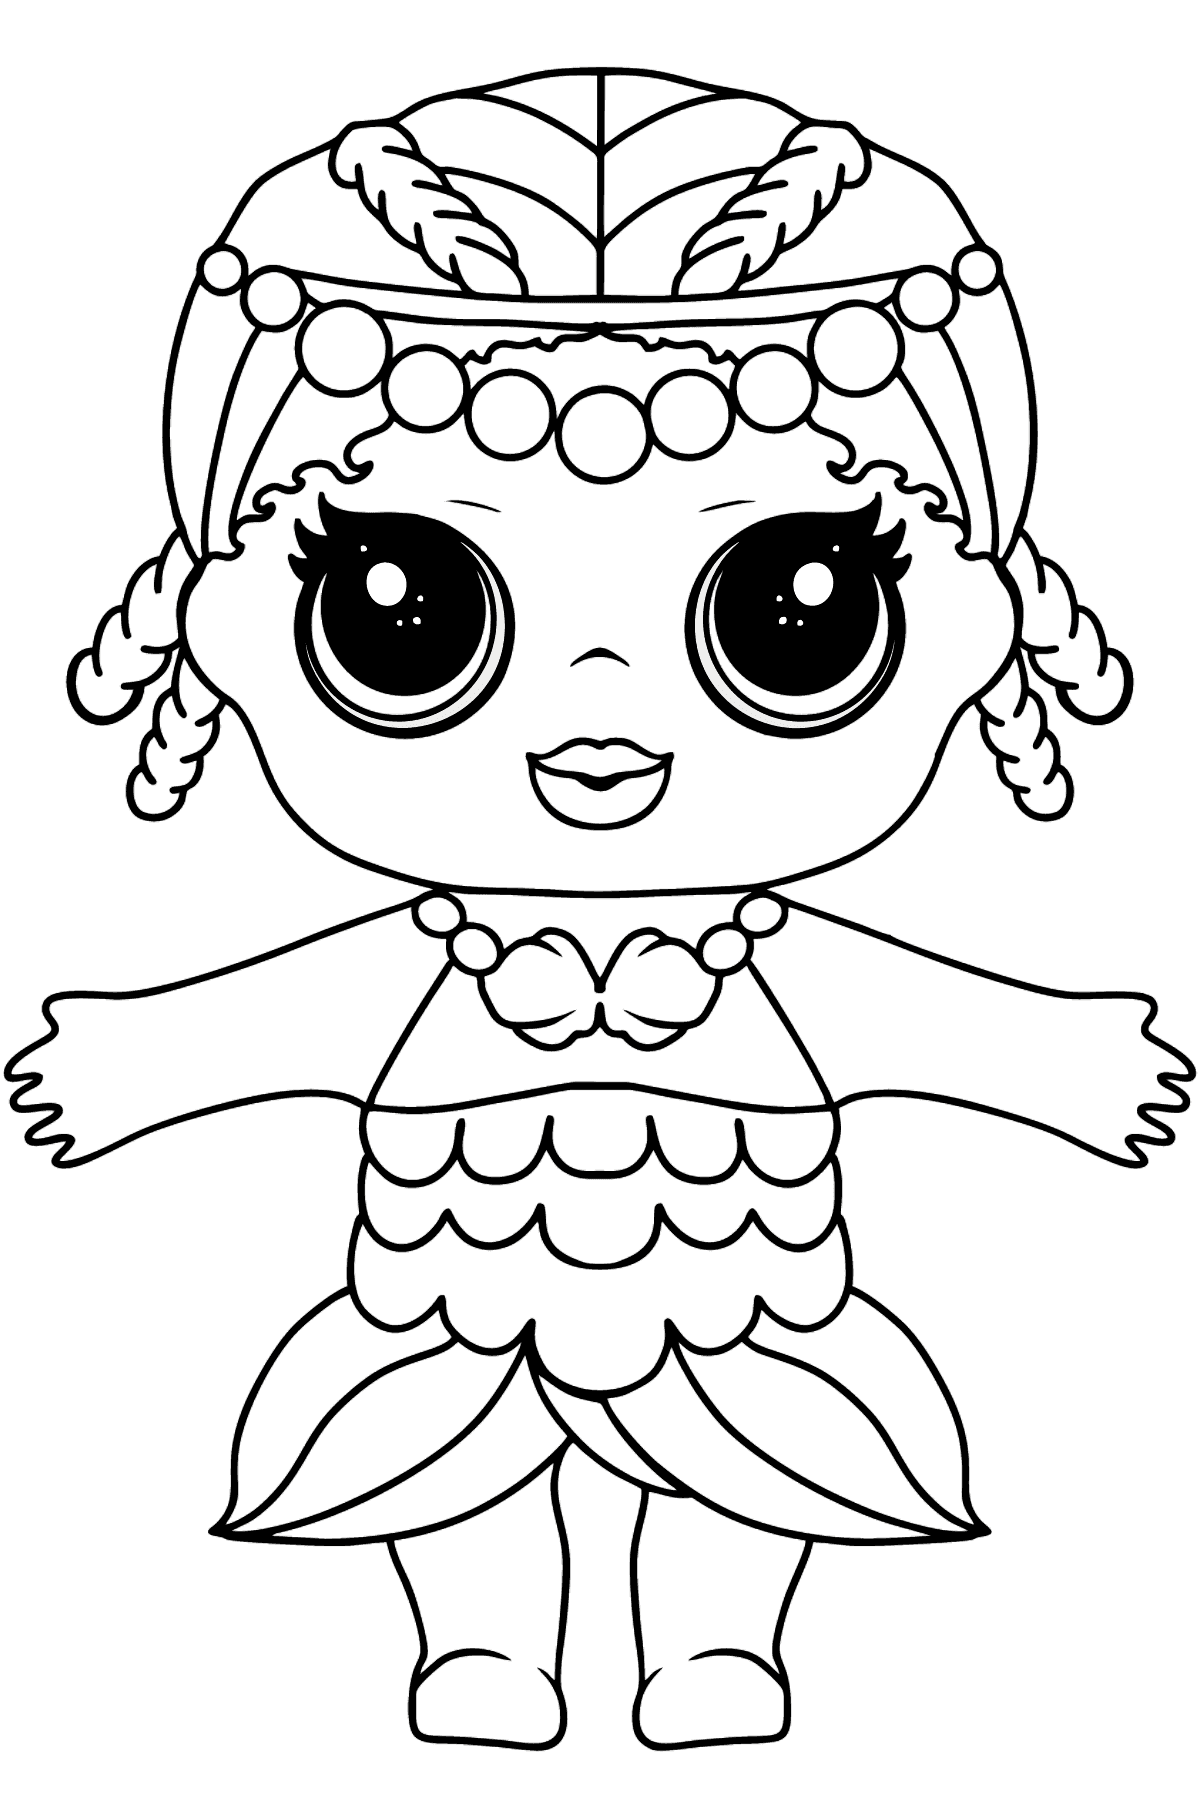 L.O.L. Surprise Doll Merbaby - Coloring Pages for Kids